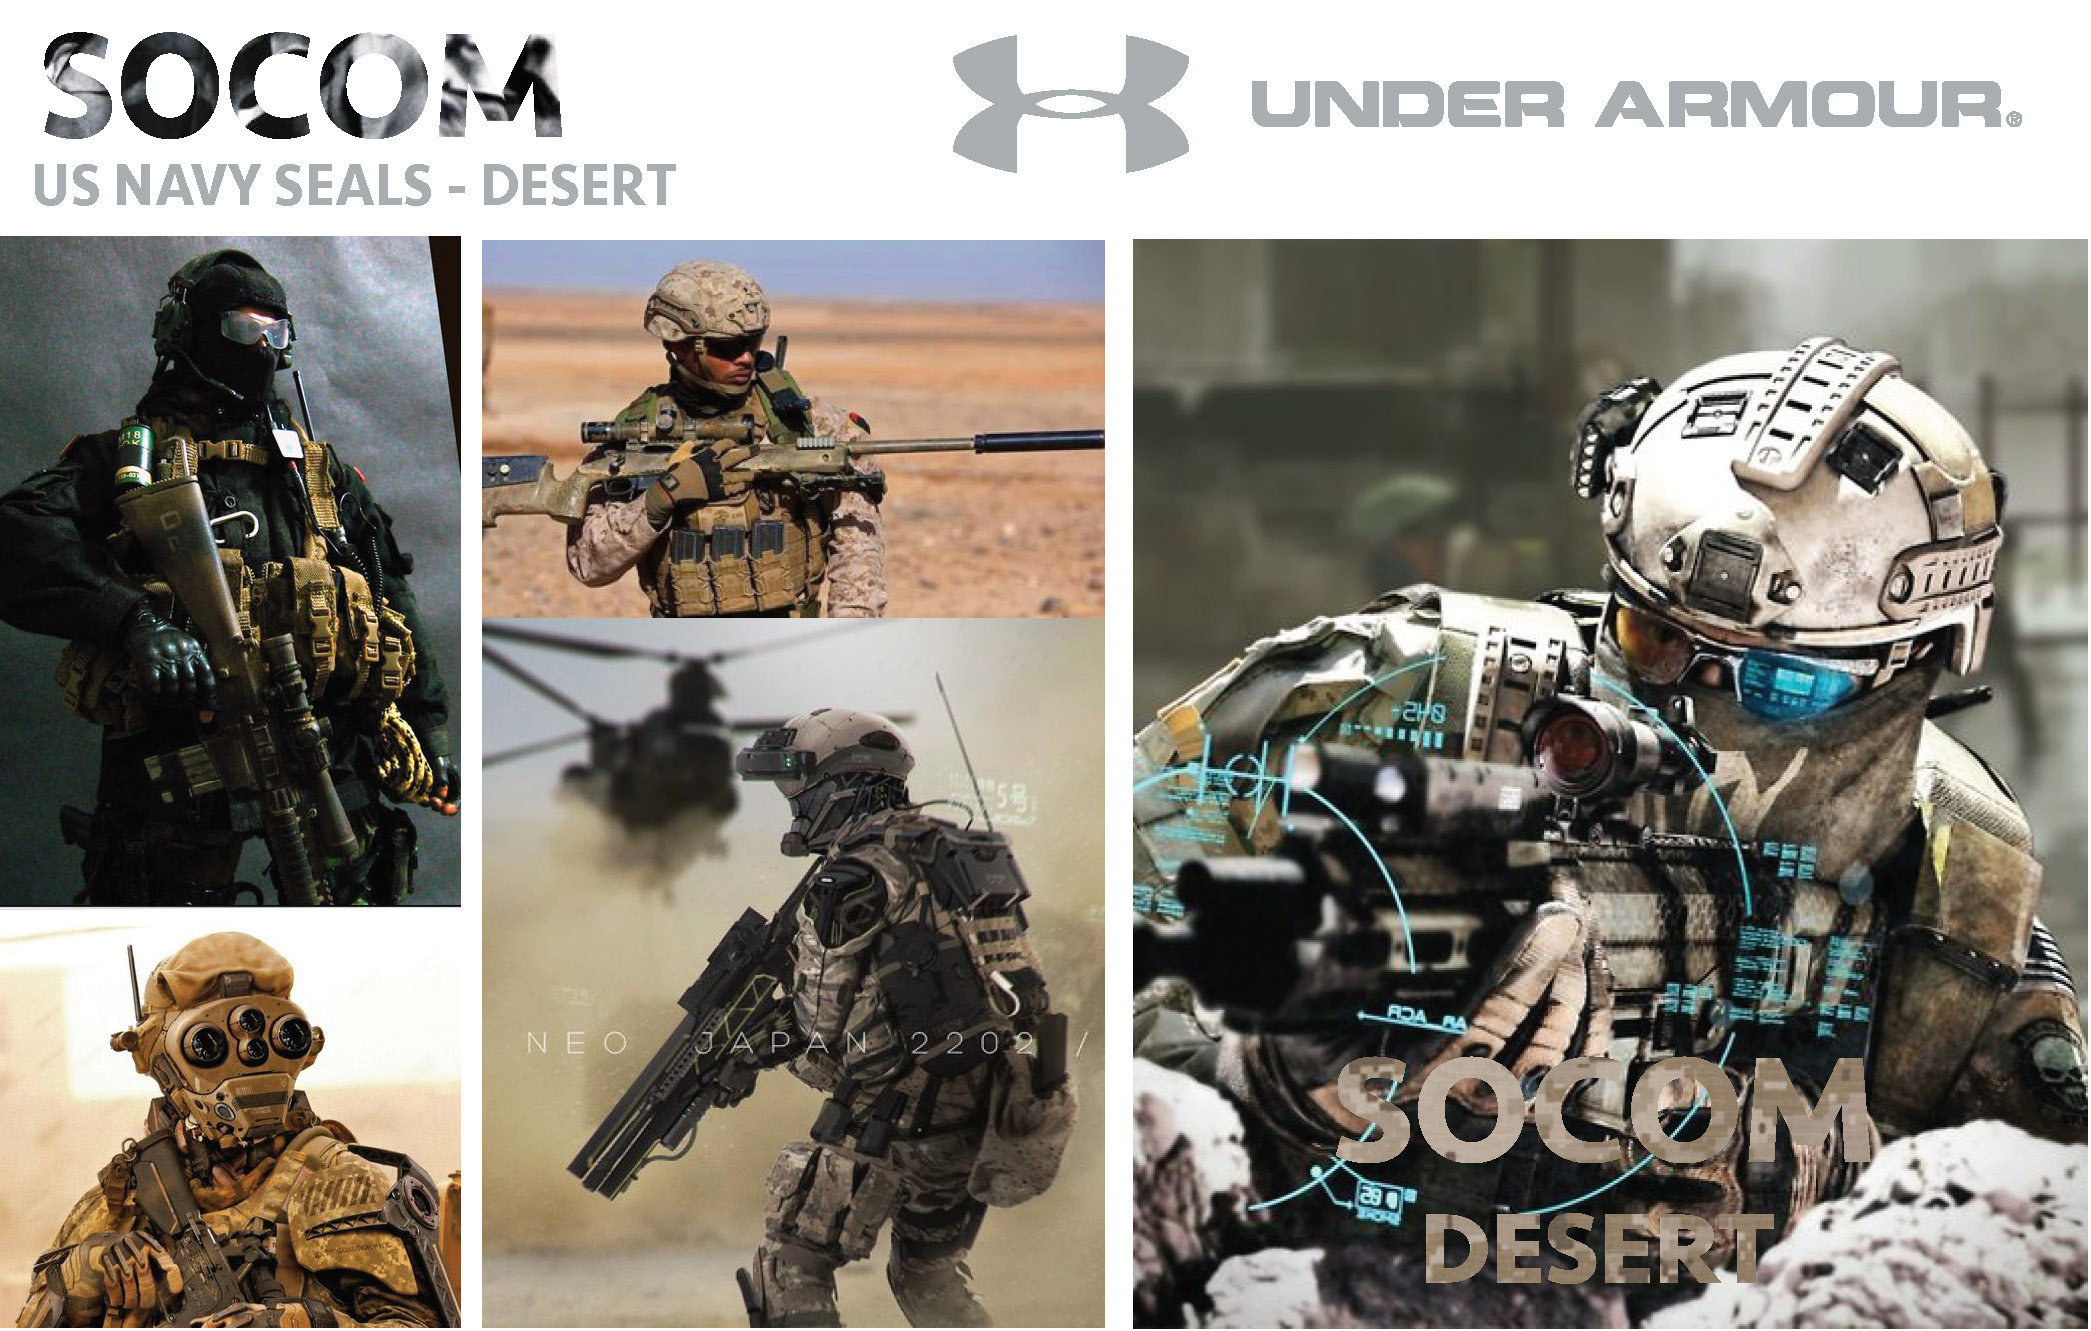 Gerard Smith - Under Armour - SOCOM